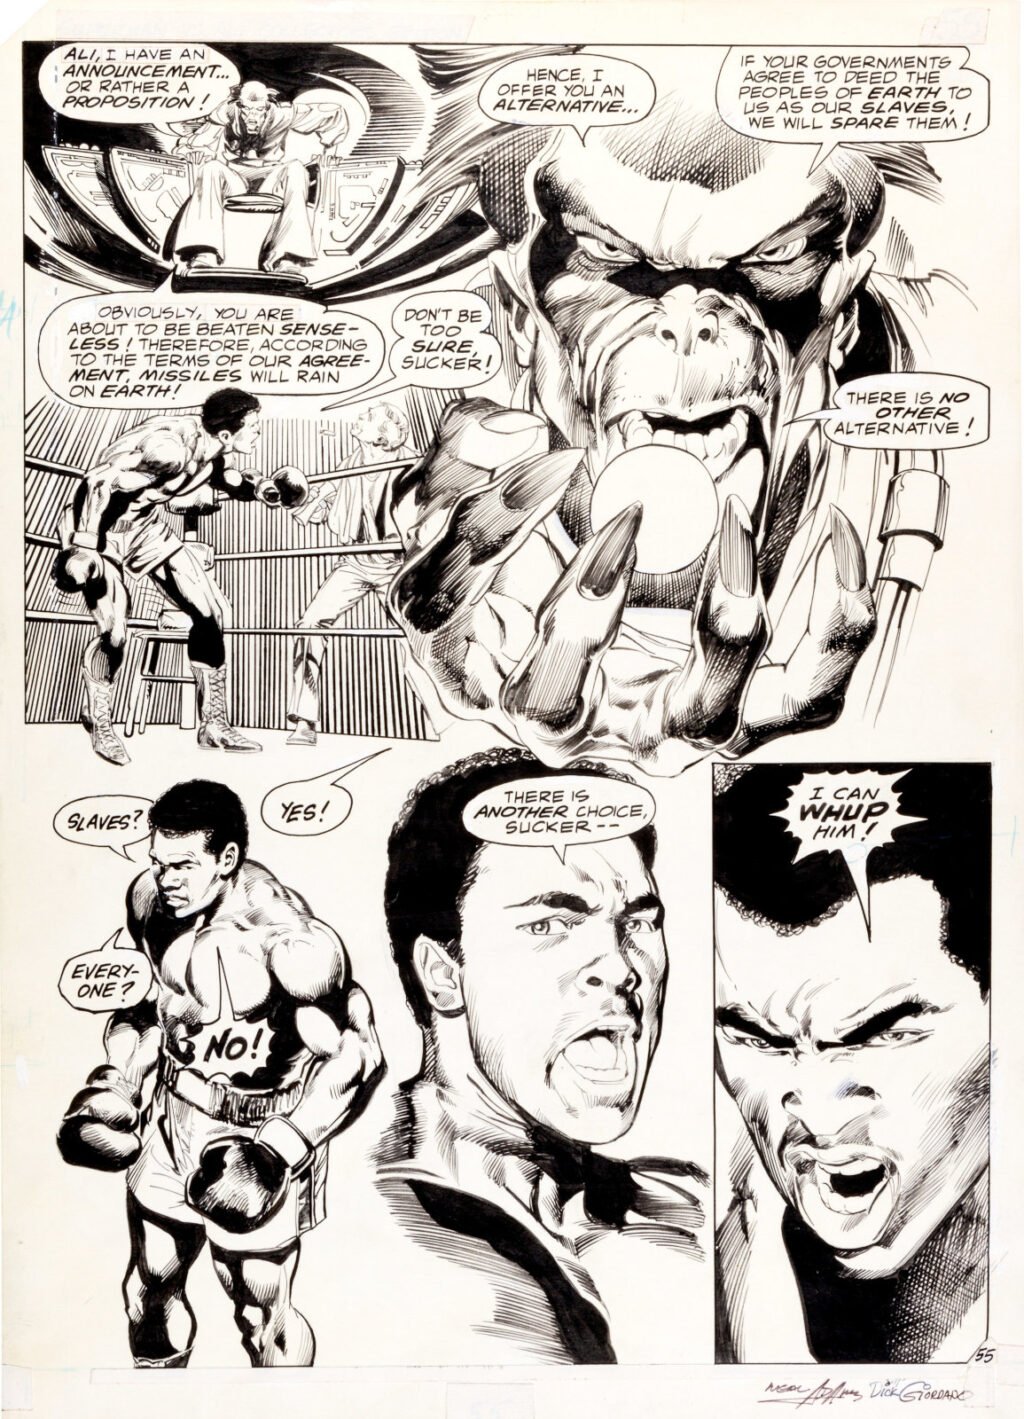 All New Collectors Edition C 56 page 55 by Neal Adams and Dick Giordano